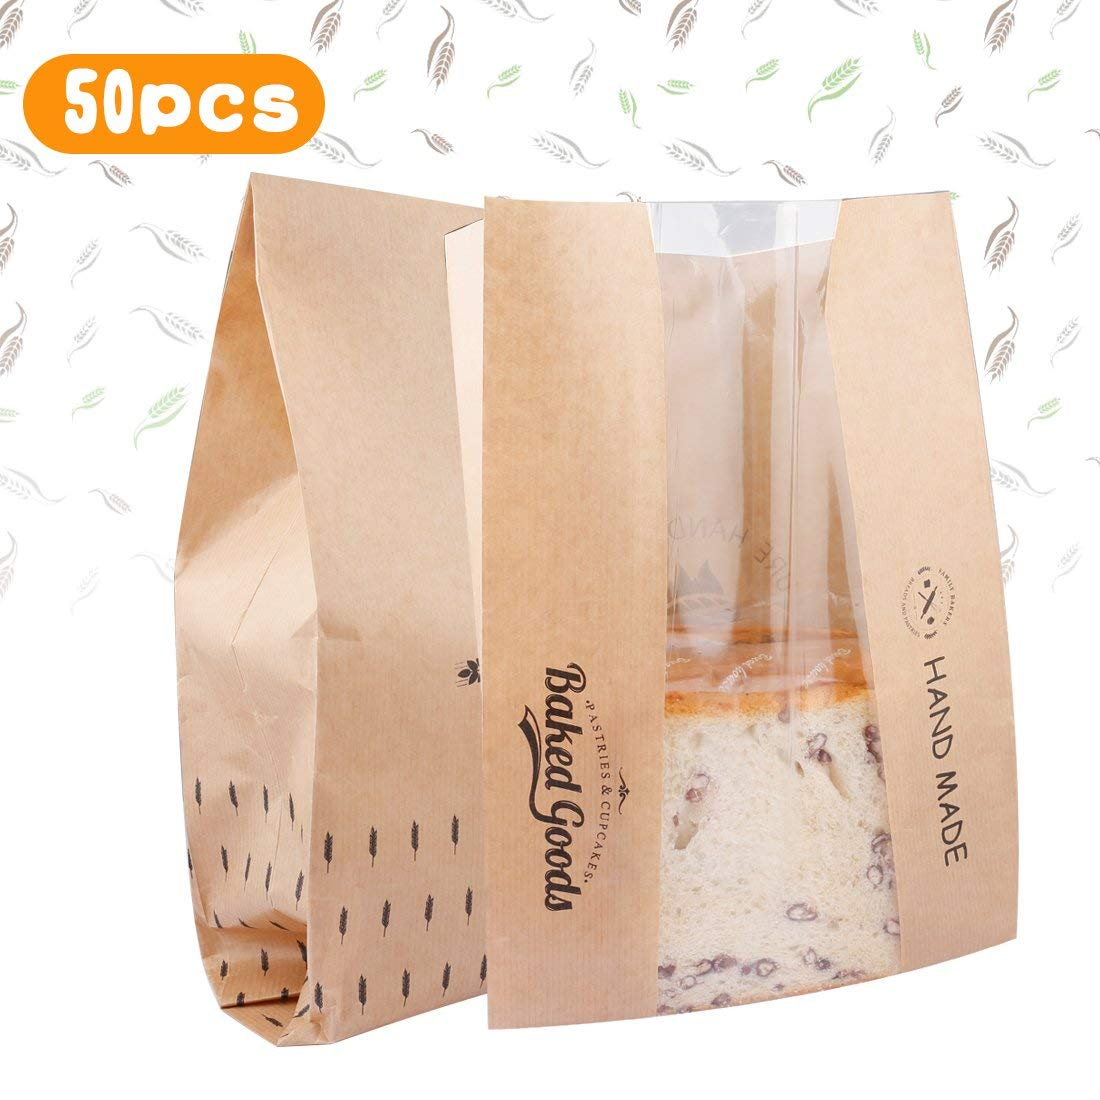 A-SZCXTOP 50pcs Paper Baking Bags Toast Bread Bags Window Anti-Oil Kraft Paper Food Packaging Bags Durable Easy Cleaning Non-toxic